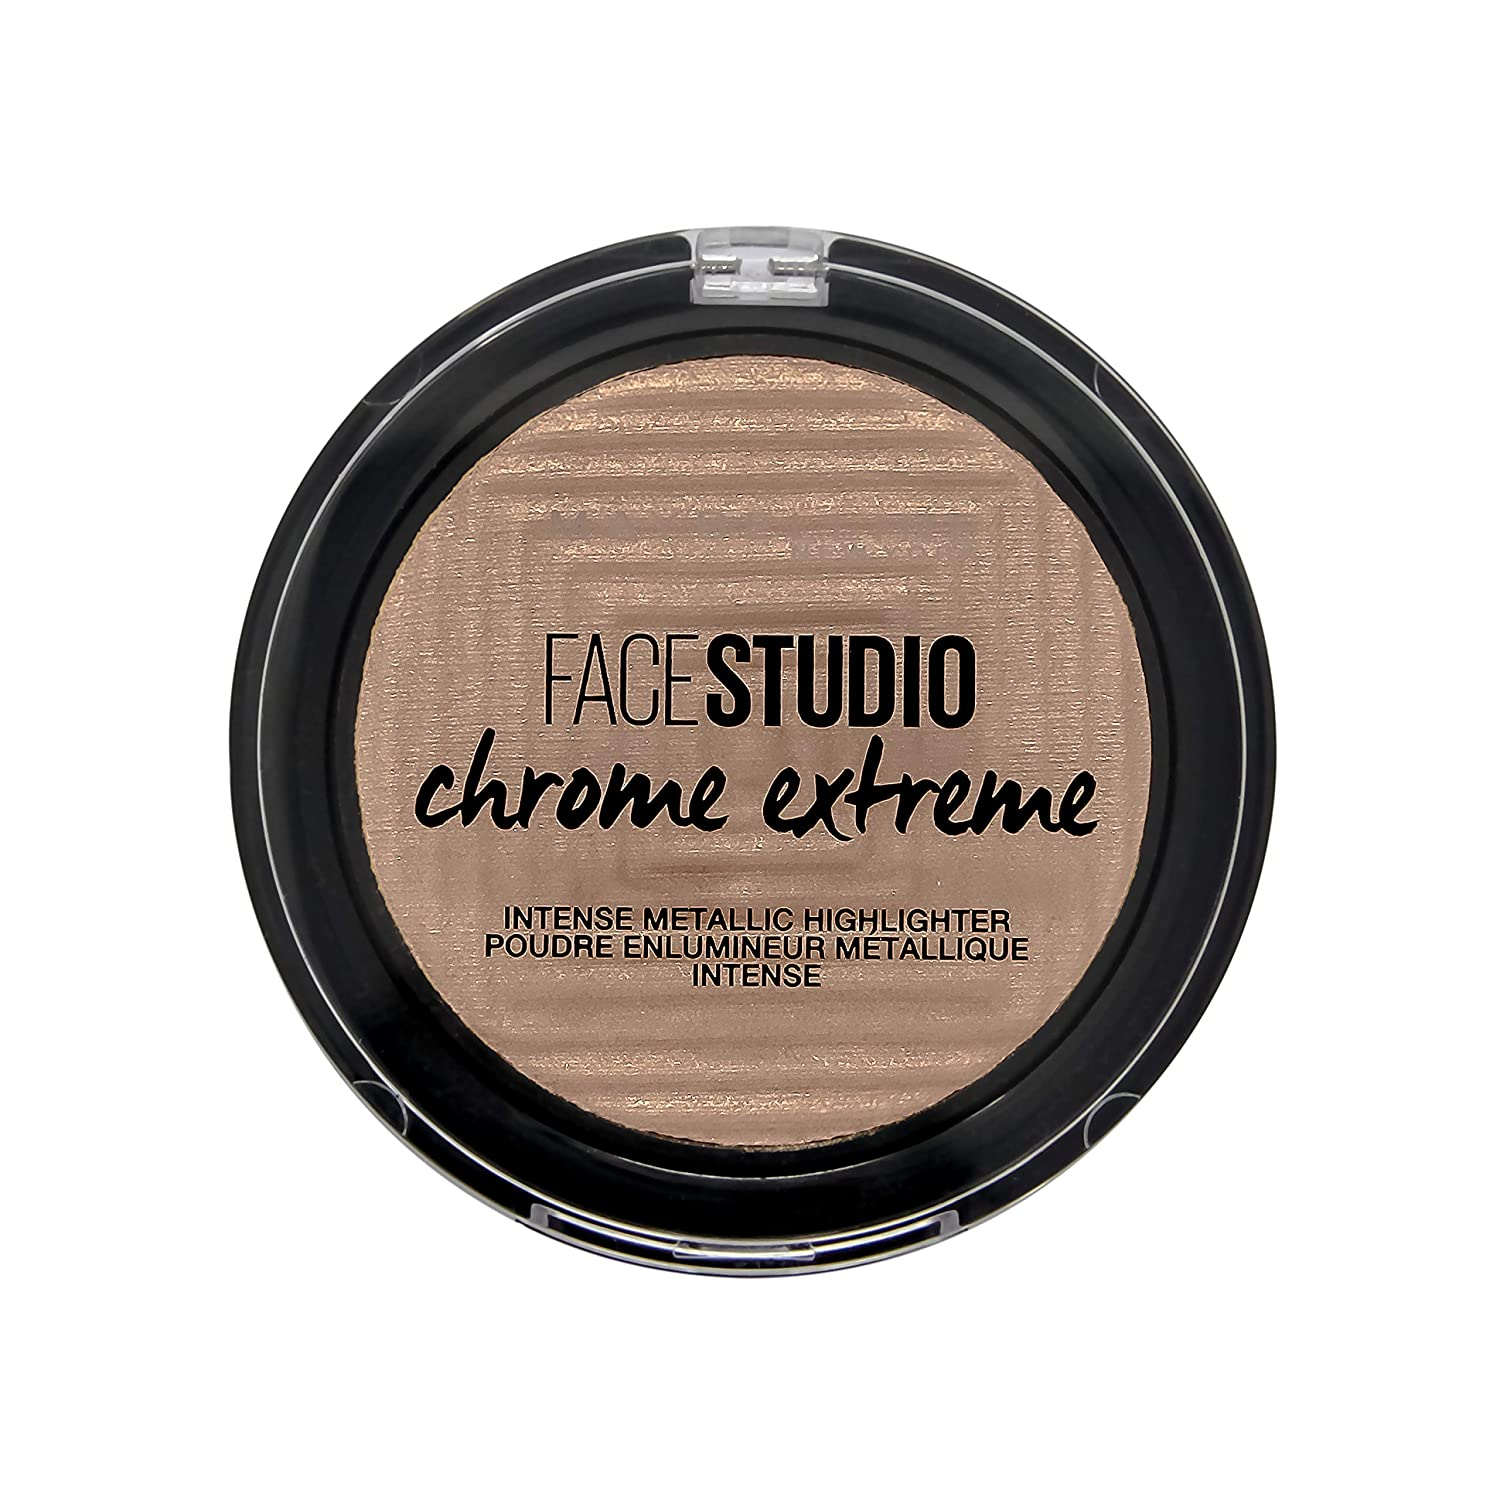 Maybelline New York Master Chrome Metallic Highlighter in Nr. 300 Sandstone Shimmer, 6 g 3600531524180